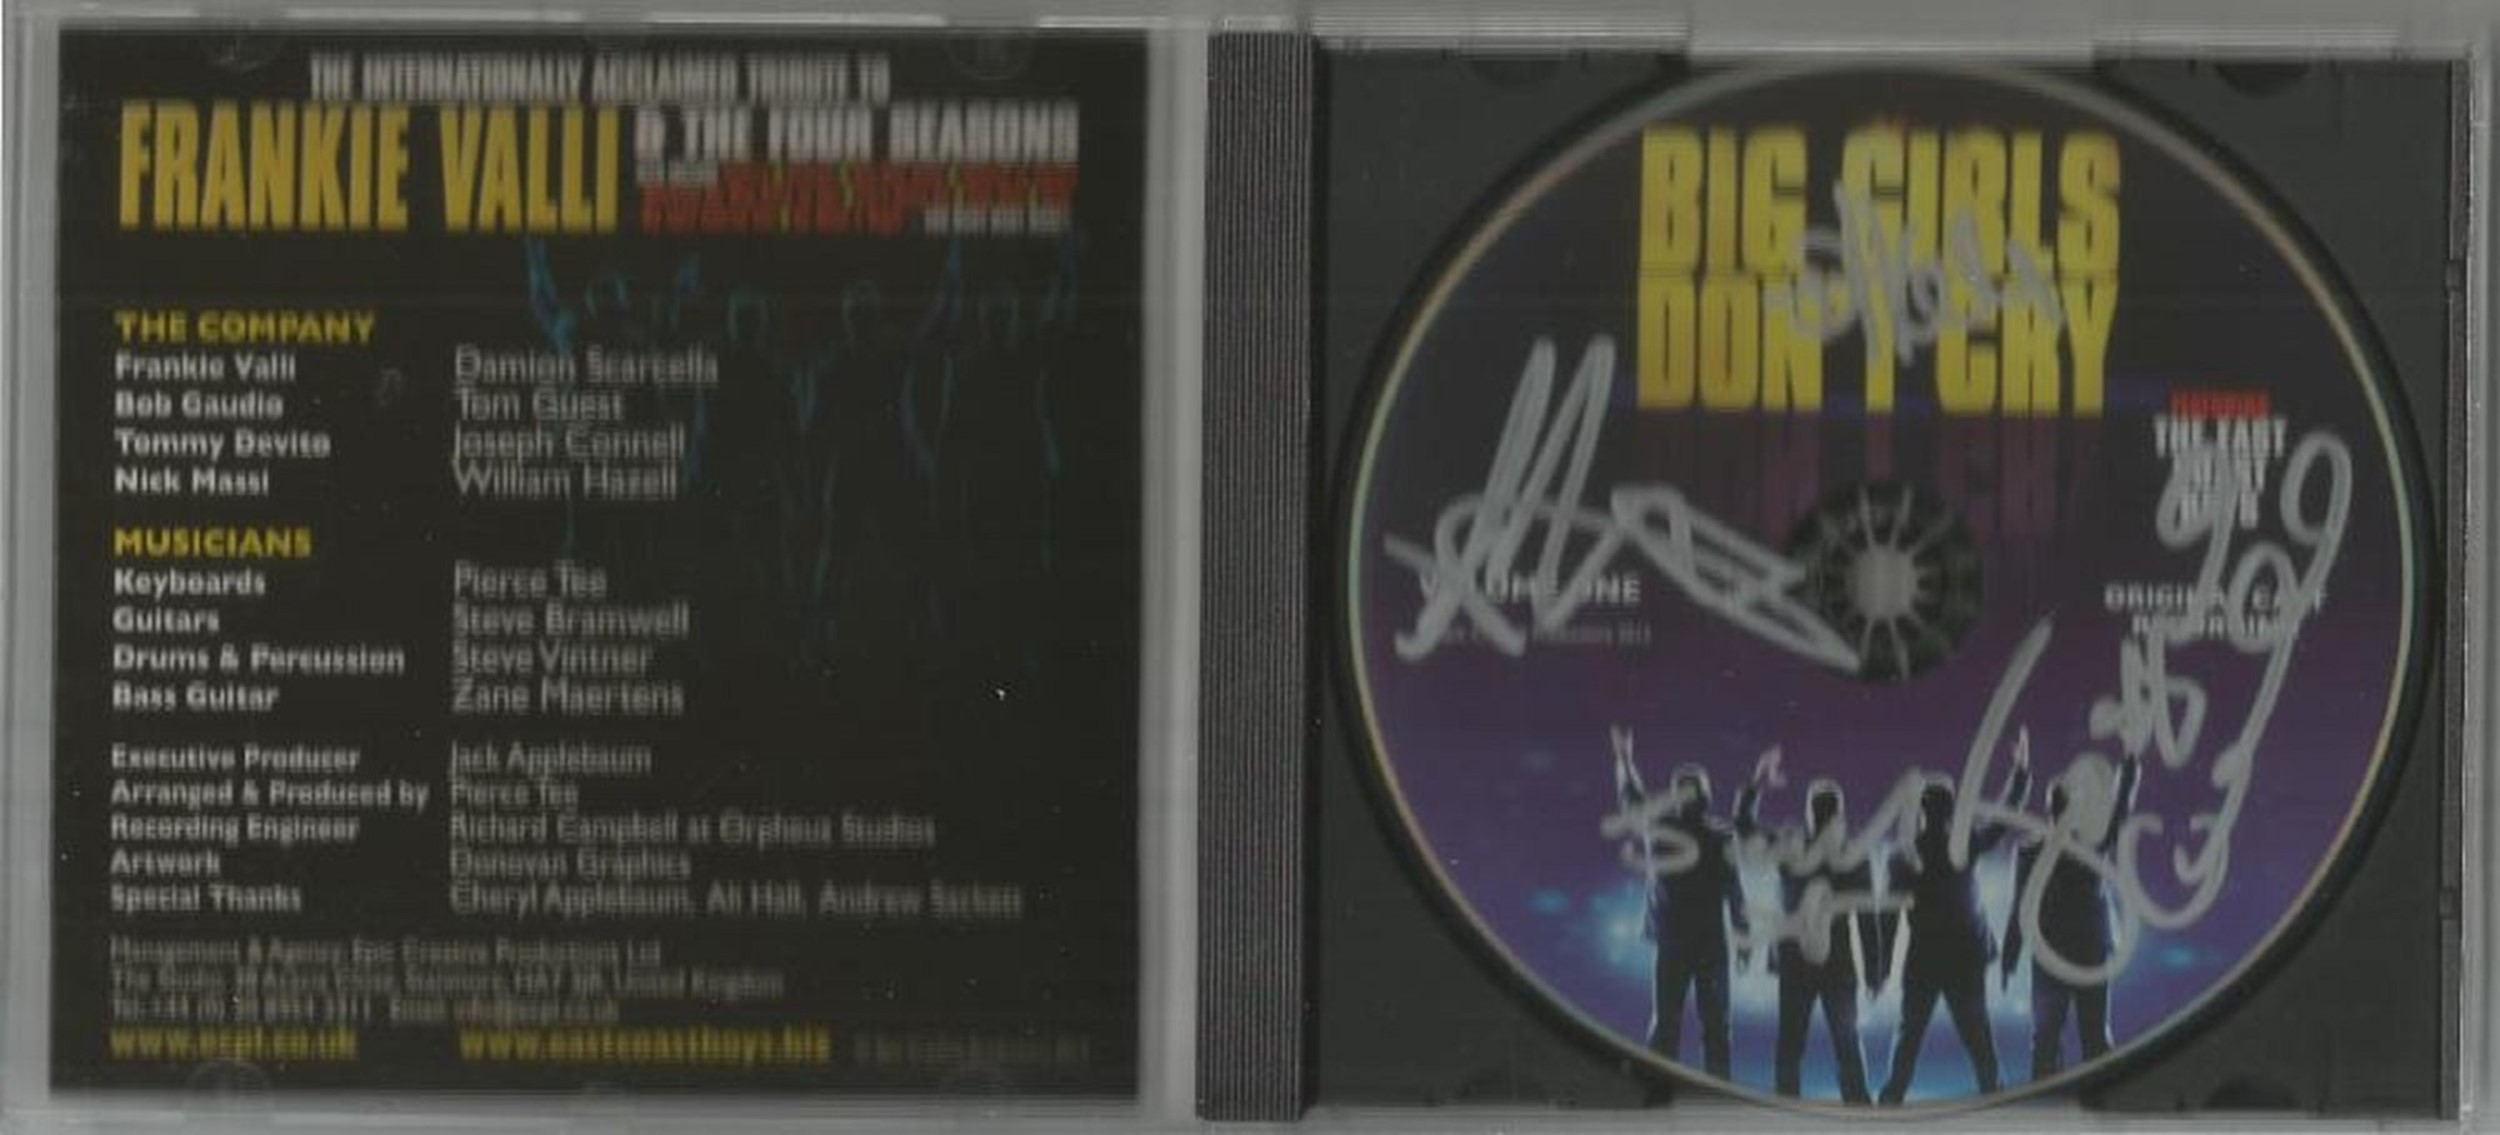 6 Signed CDs Including The East Coast Boys Big Girls Don't Cry Disc Included, Heidi Talbot The - Image 5 of 5